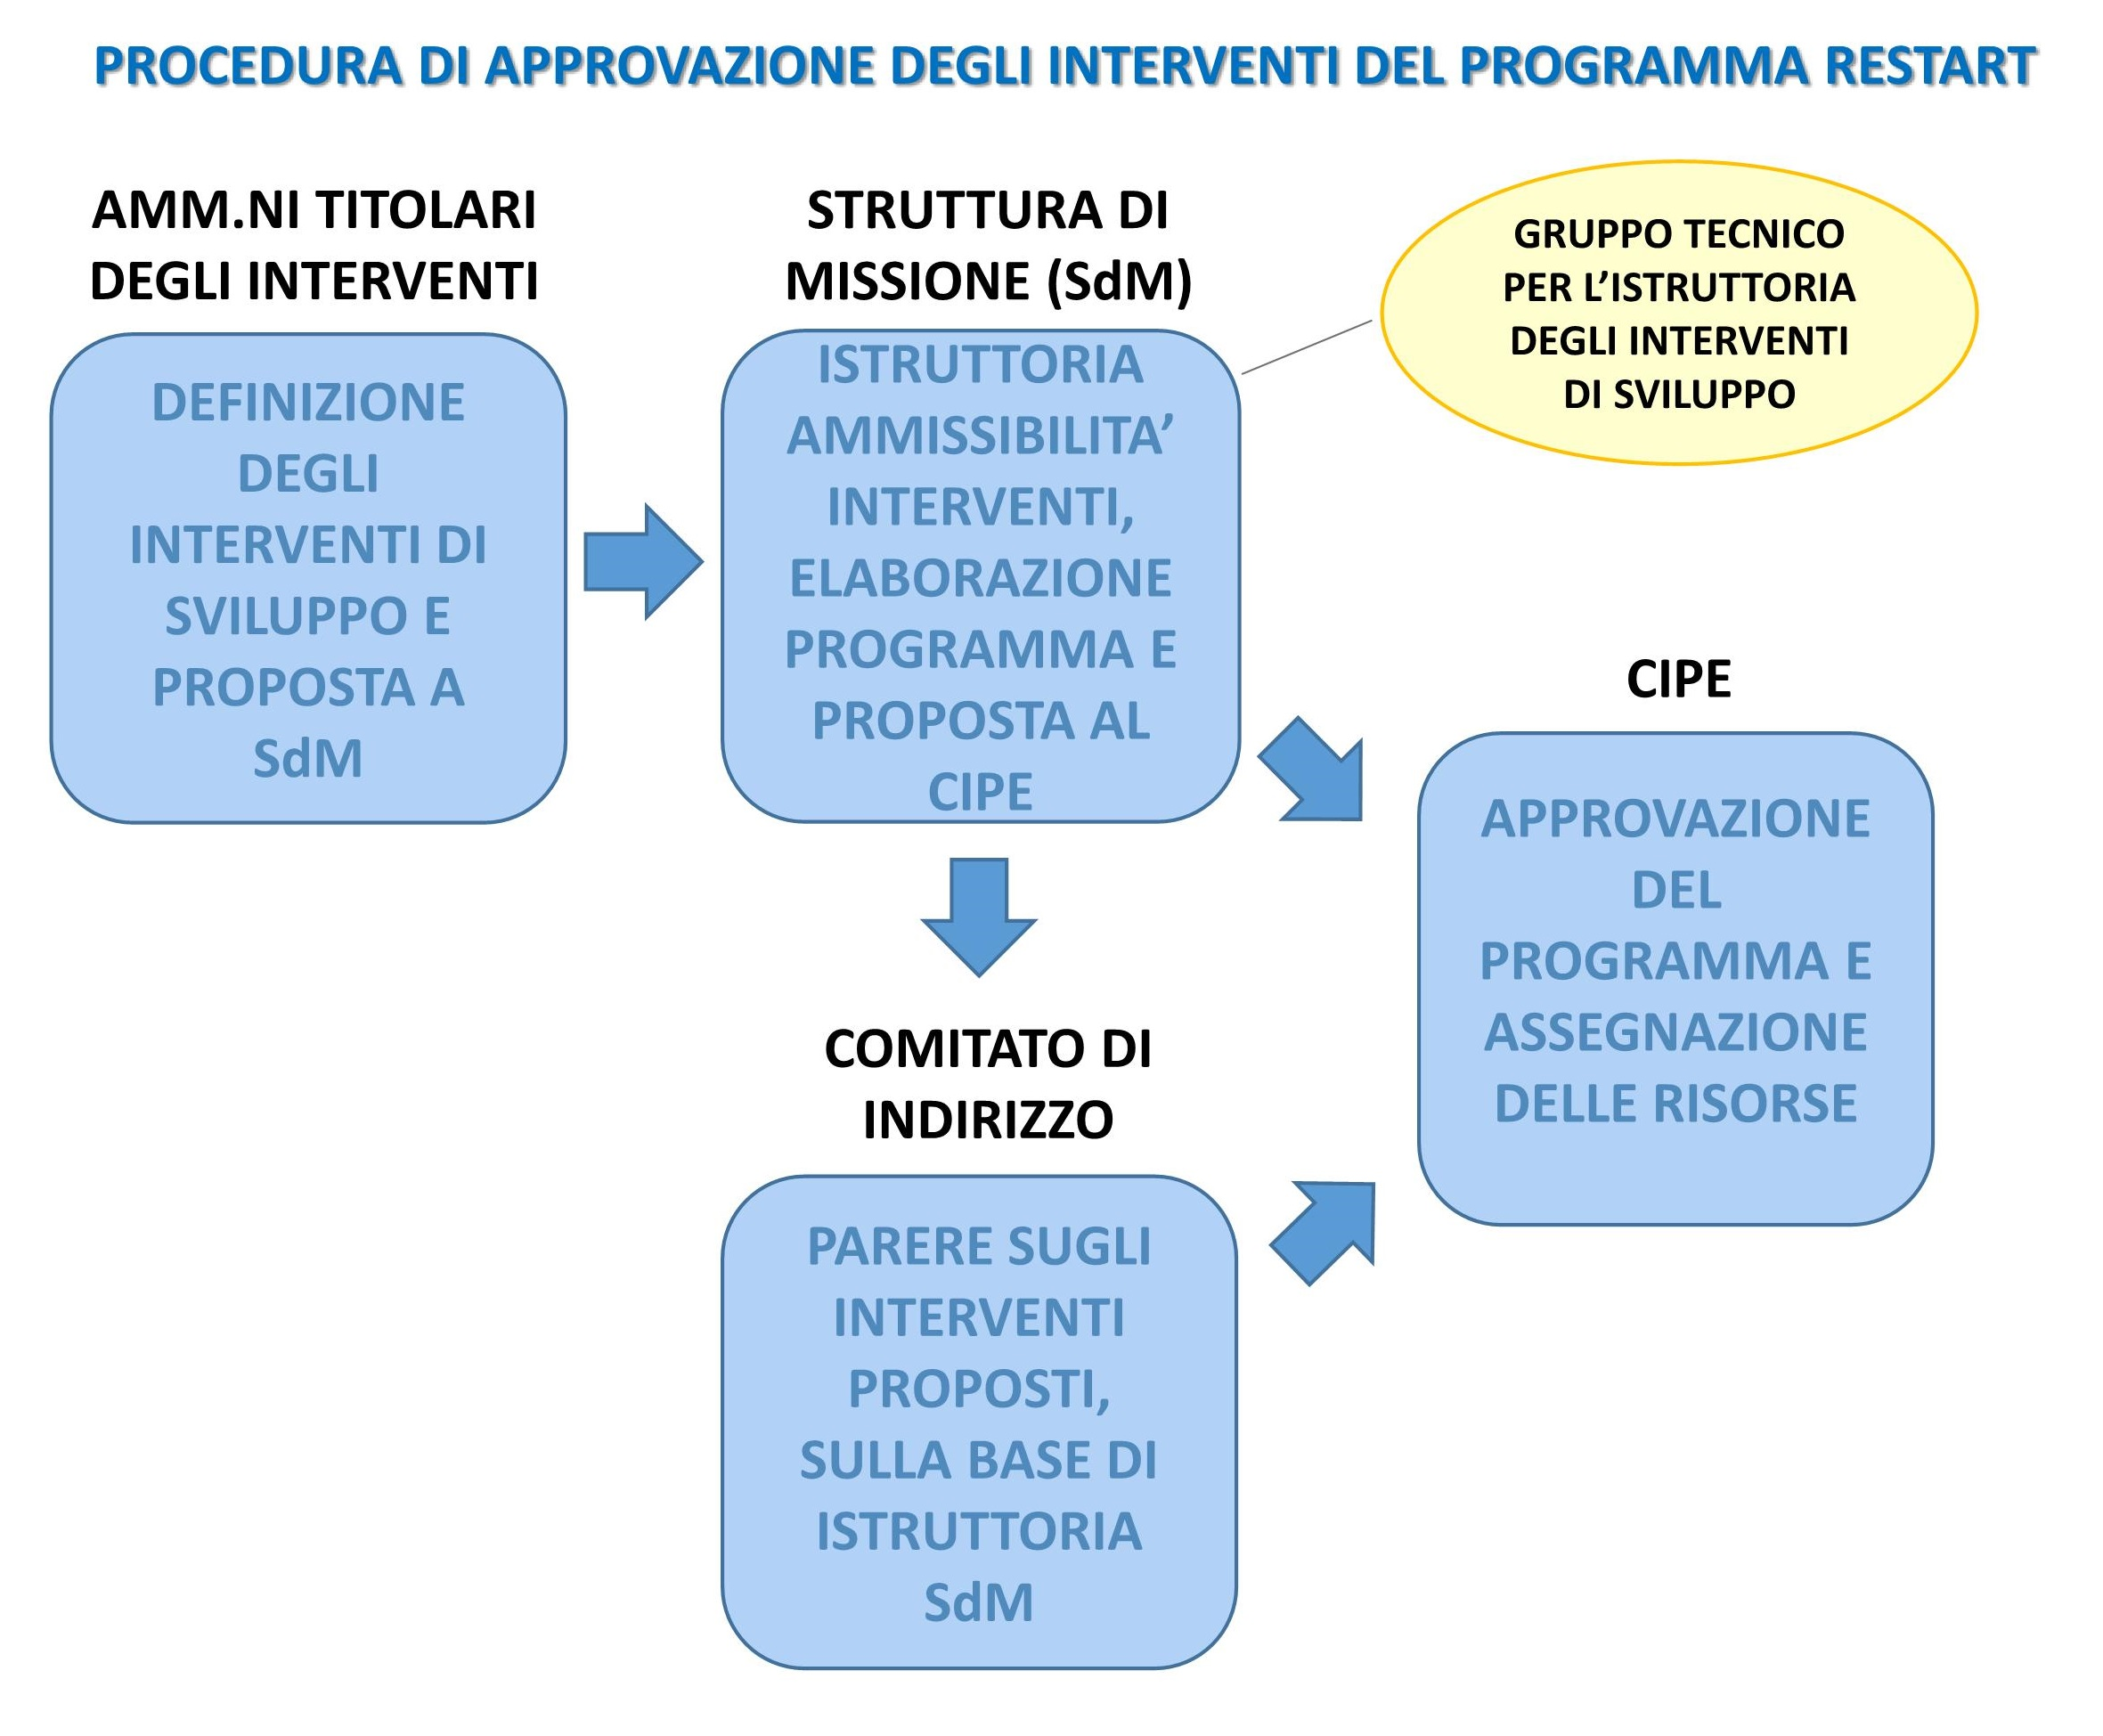 procedura approvazione interventi restart